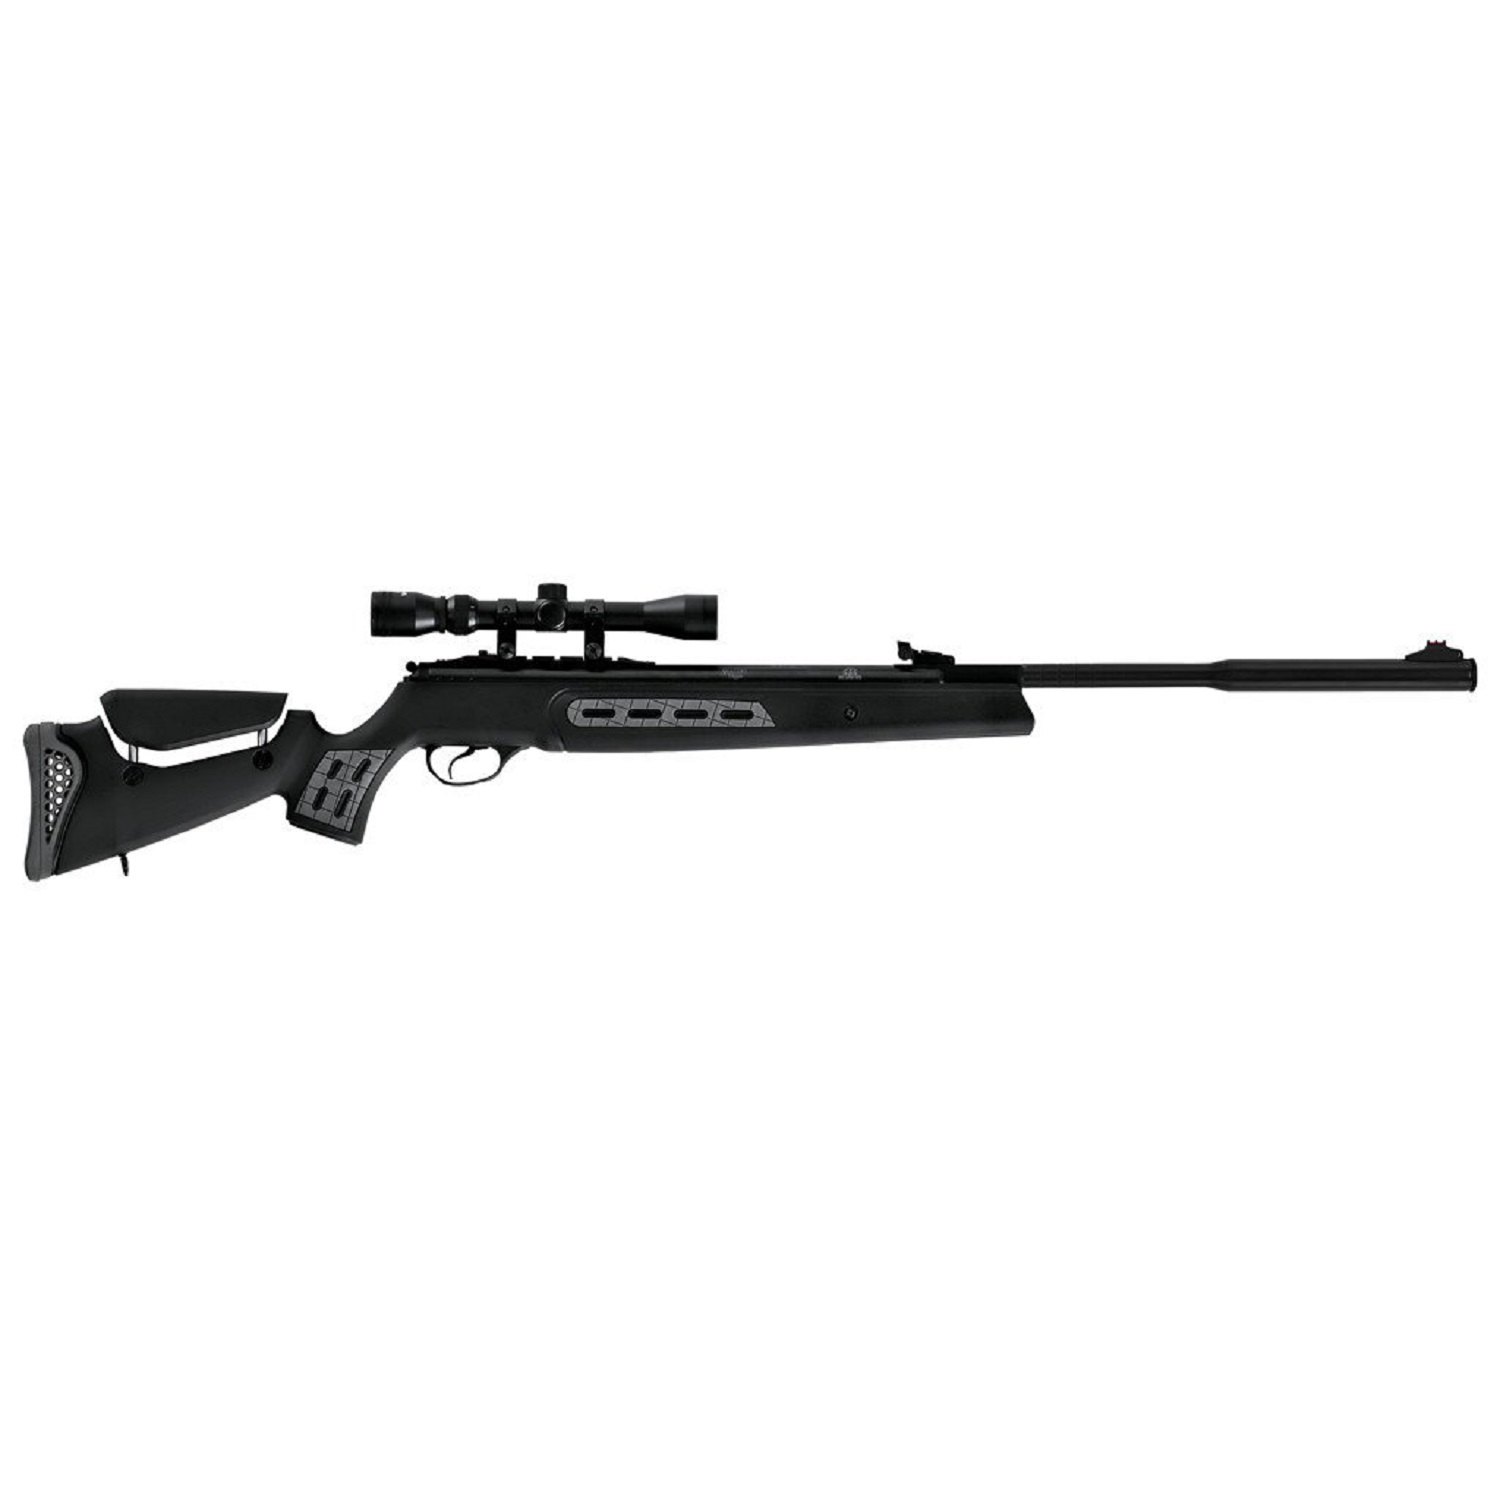 Hatsan Mod 125 Sniper Vortex QE .177 Caliber Air Rifle-Scope